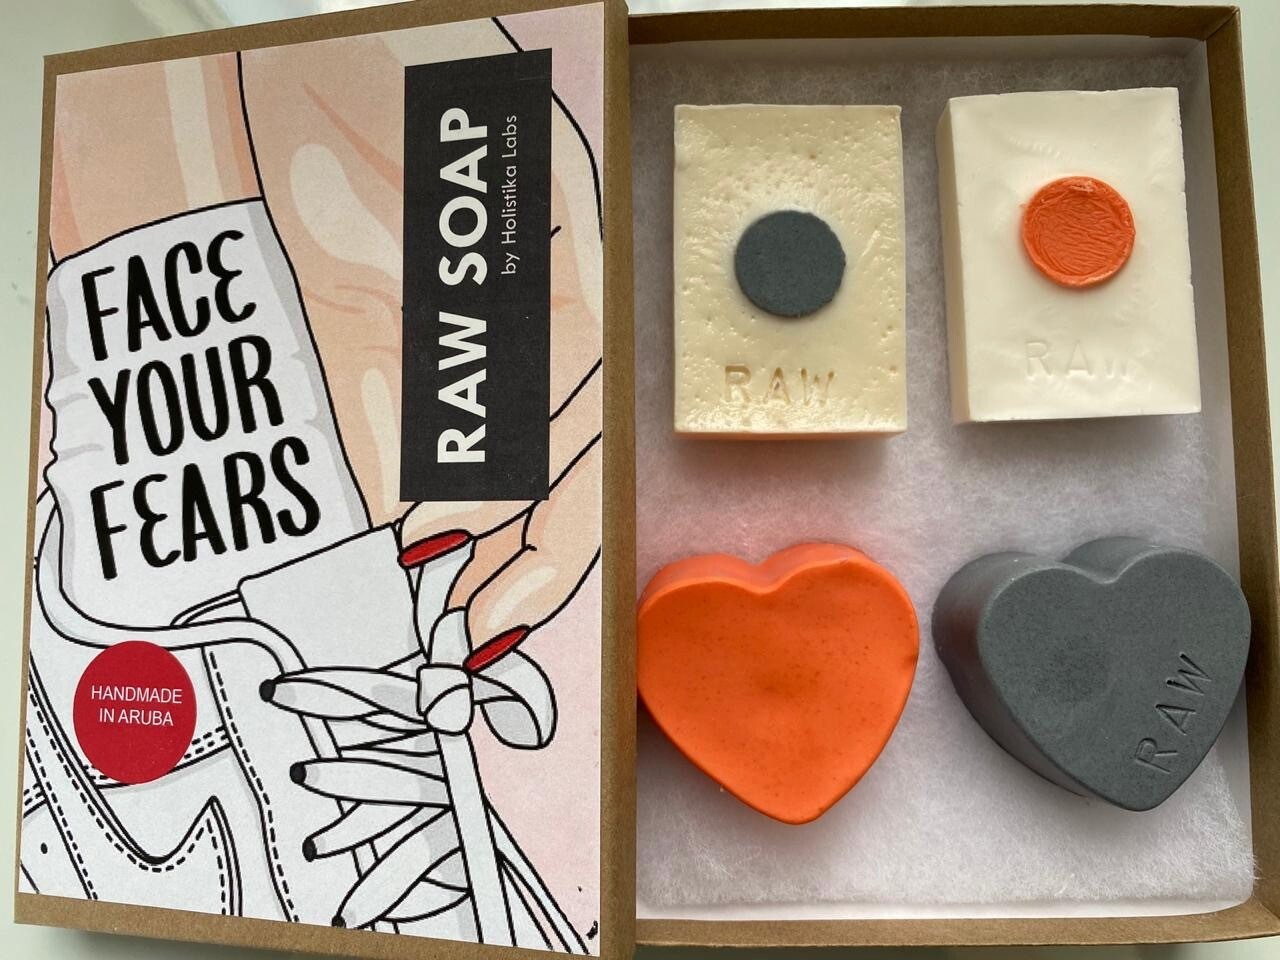 RAW Soap Holistika 'Face Your Fears 1'